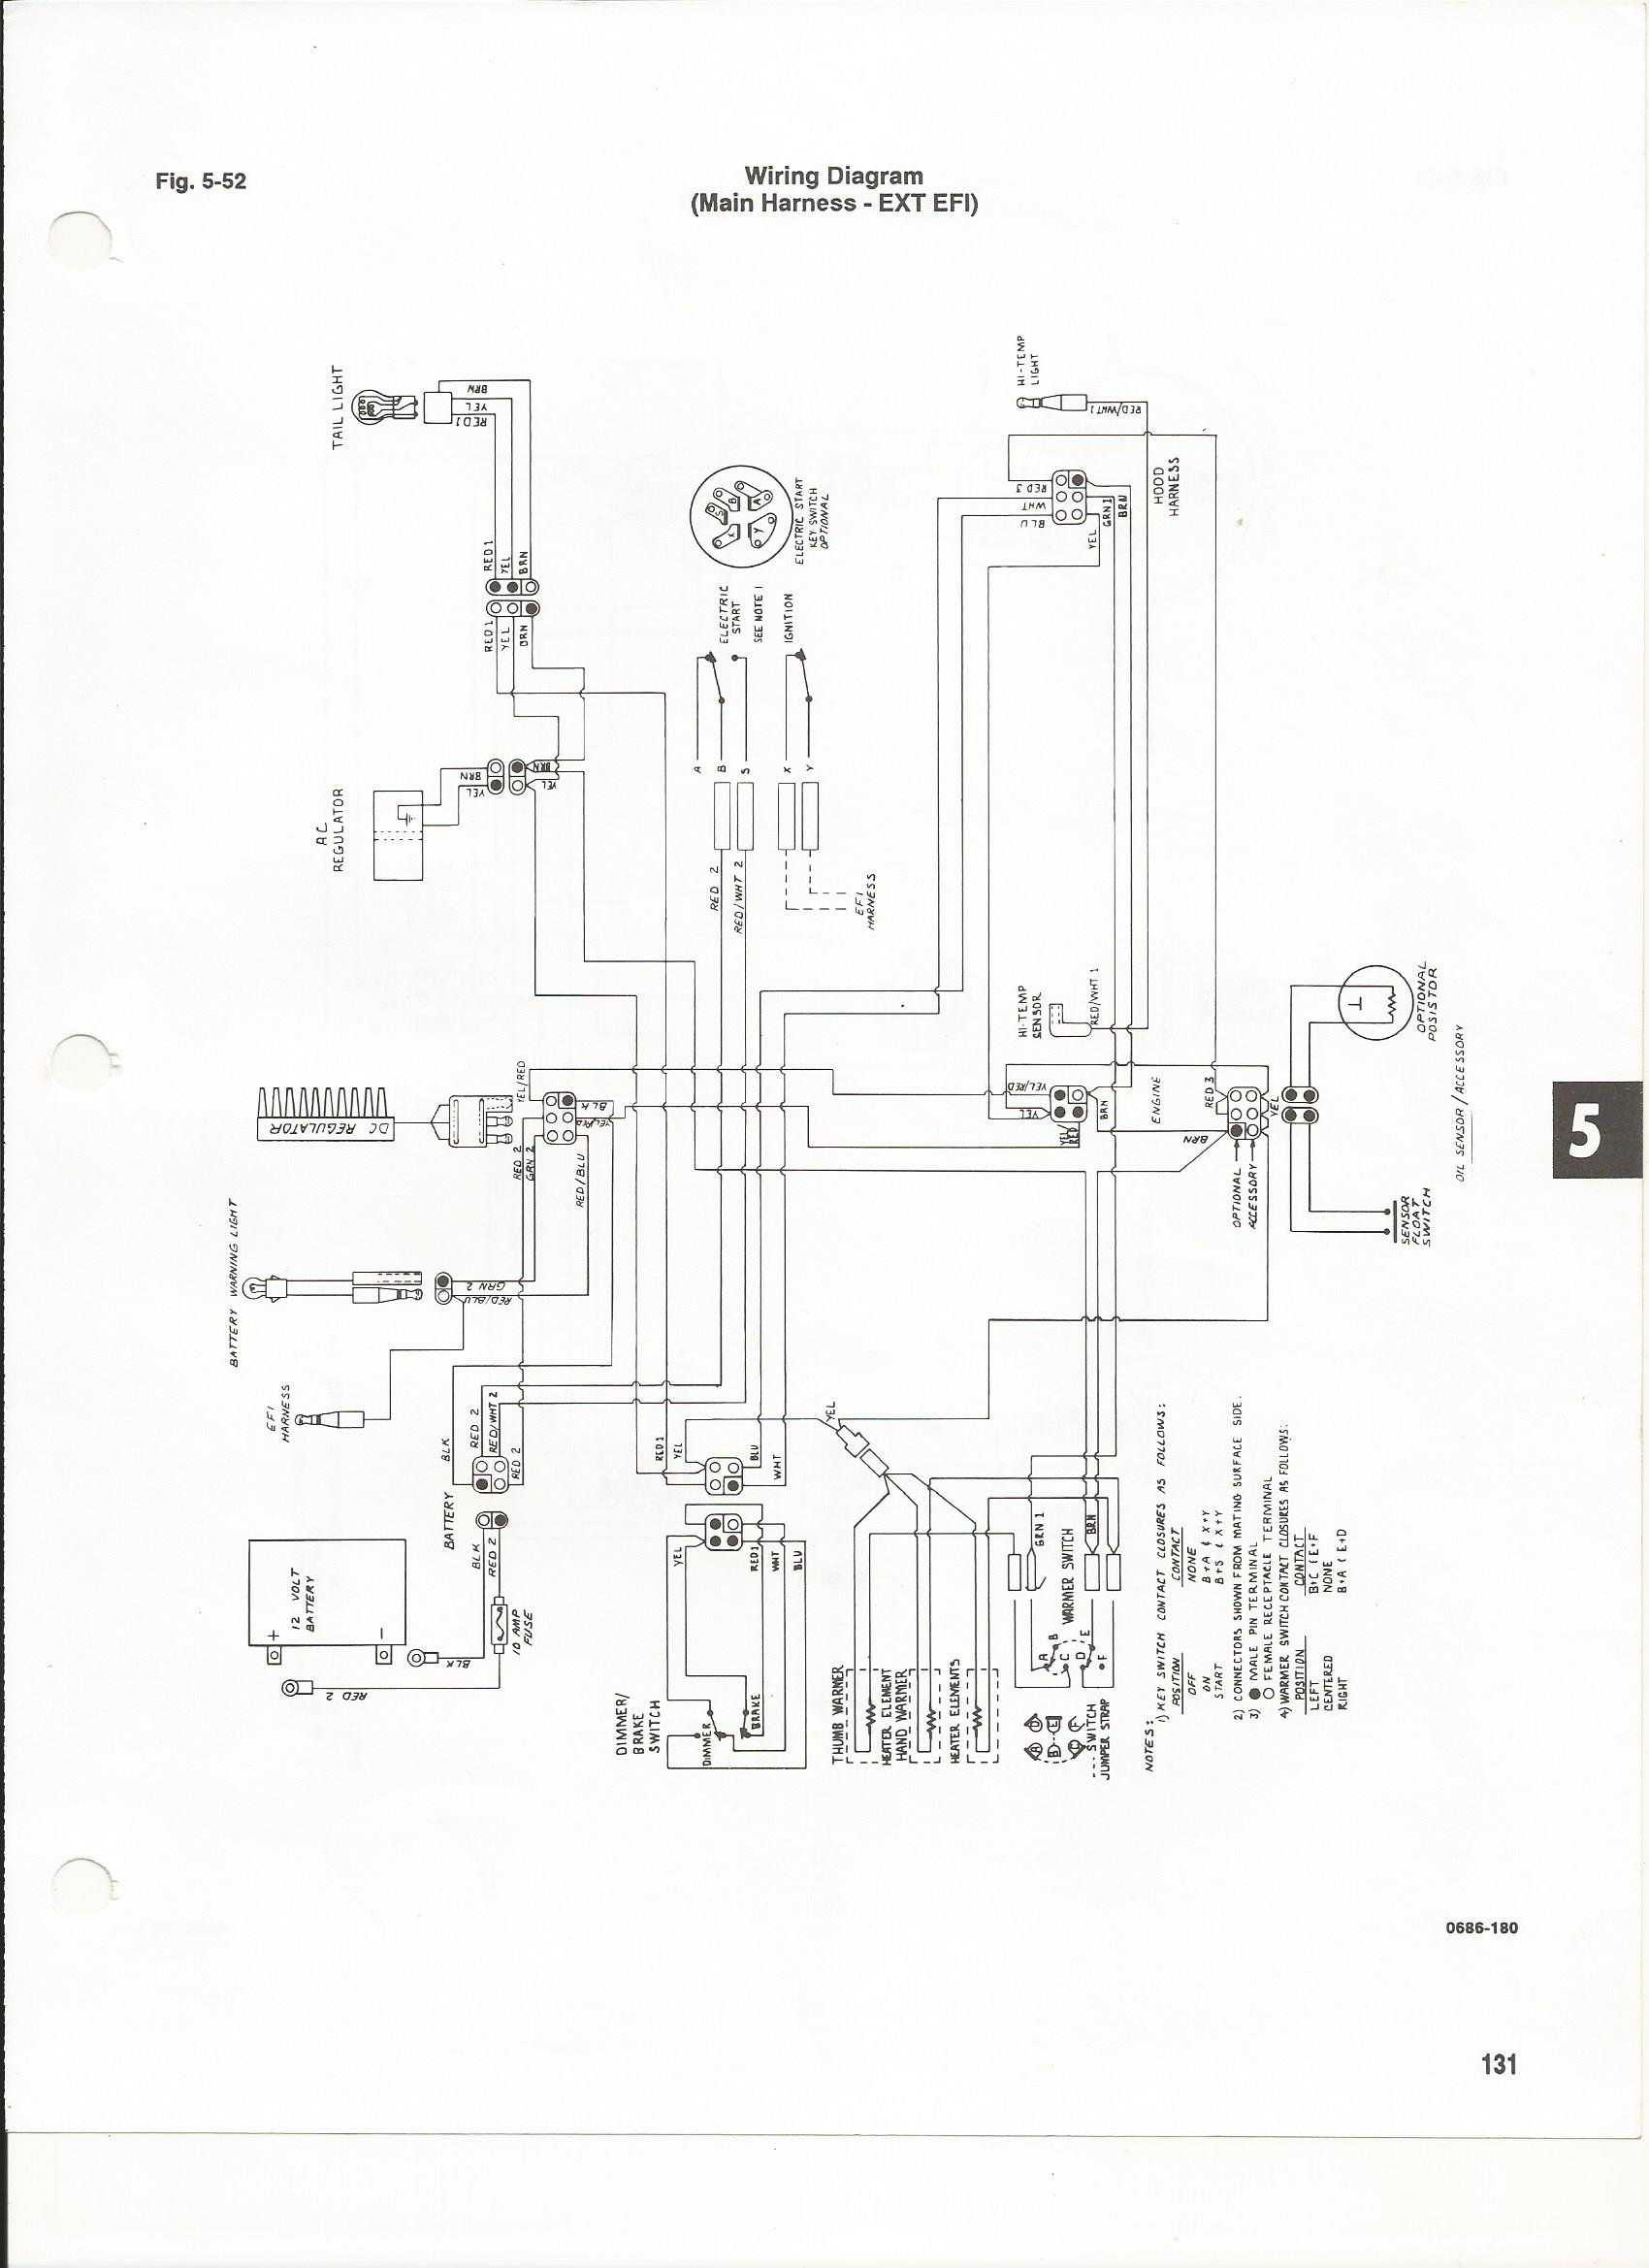 [DIAGRAM_5NL]  93 550 ext efi electrical problems | Arctic Cat Forum | 1993 Arctic Wildcat Wiring Diagram |  | Arctic Cat Forum